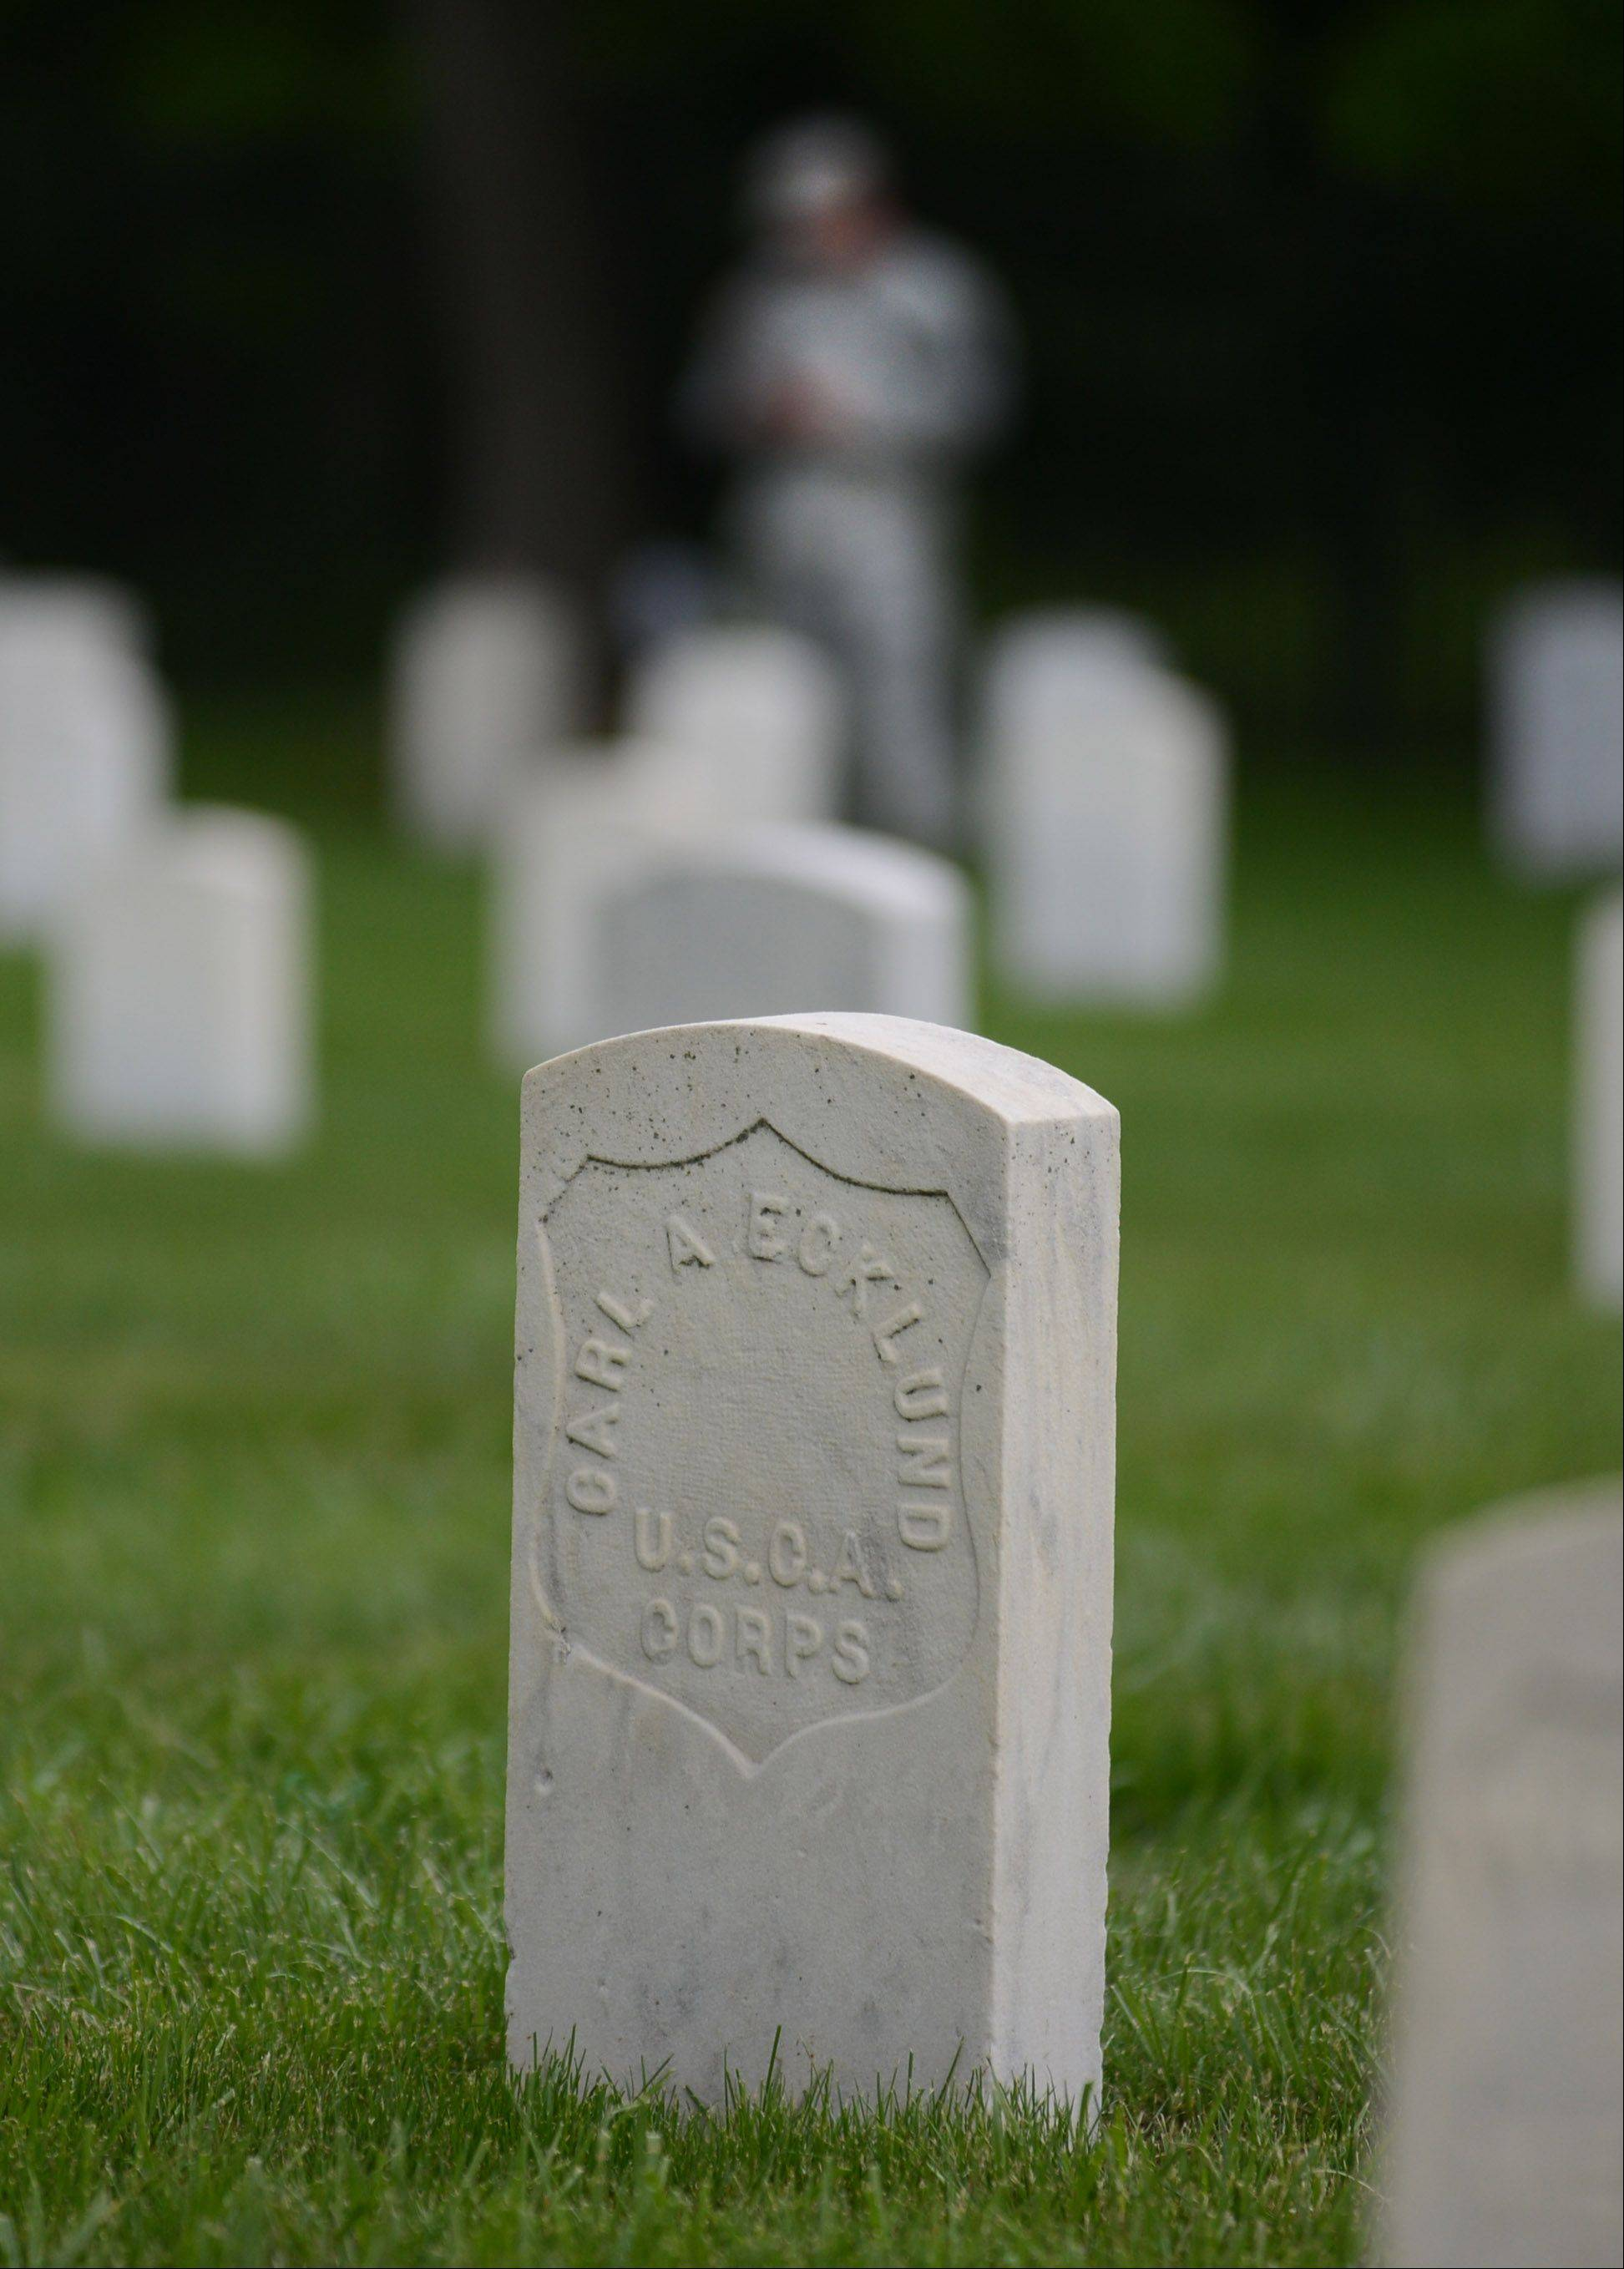 Soldiers from Fort McCoy in Wisconsin are part of a team documenting grave markers at the Fort Sheridan Cemetery.